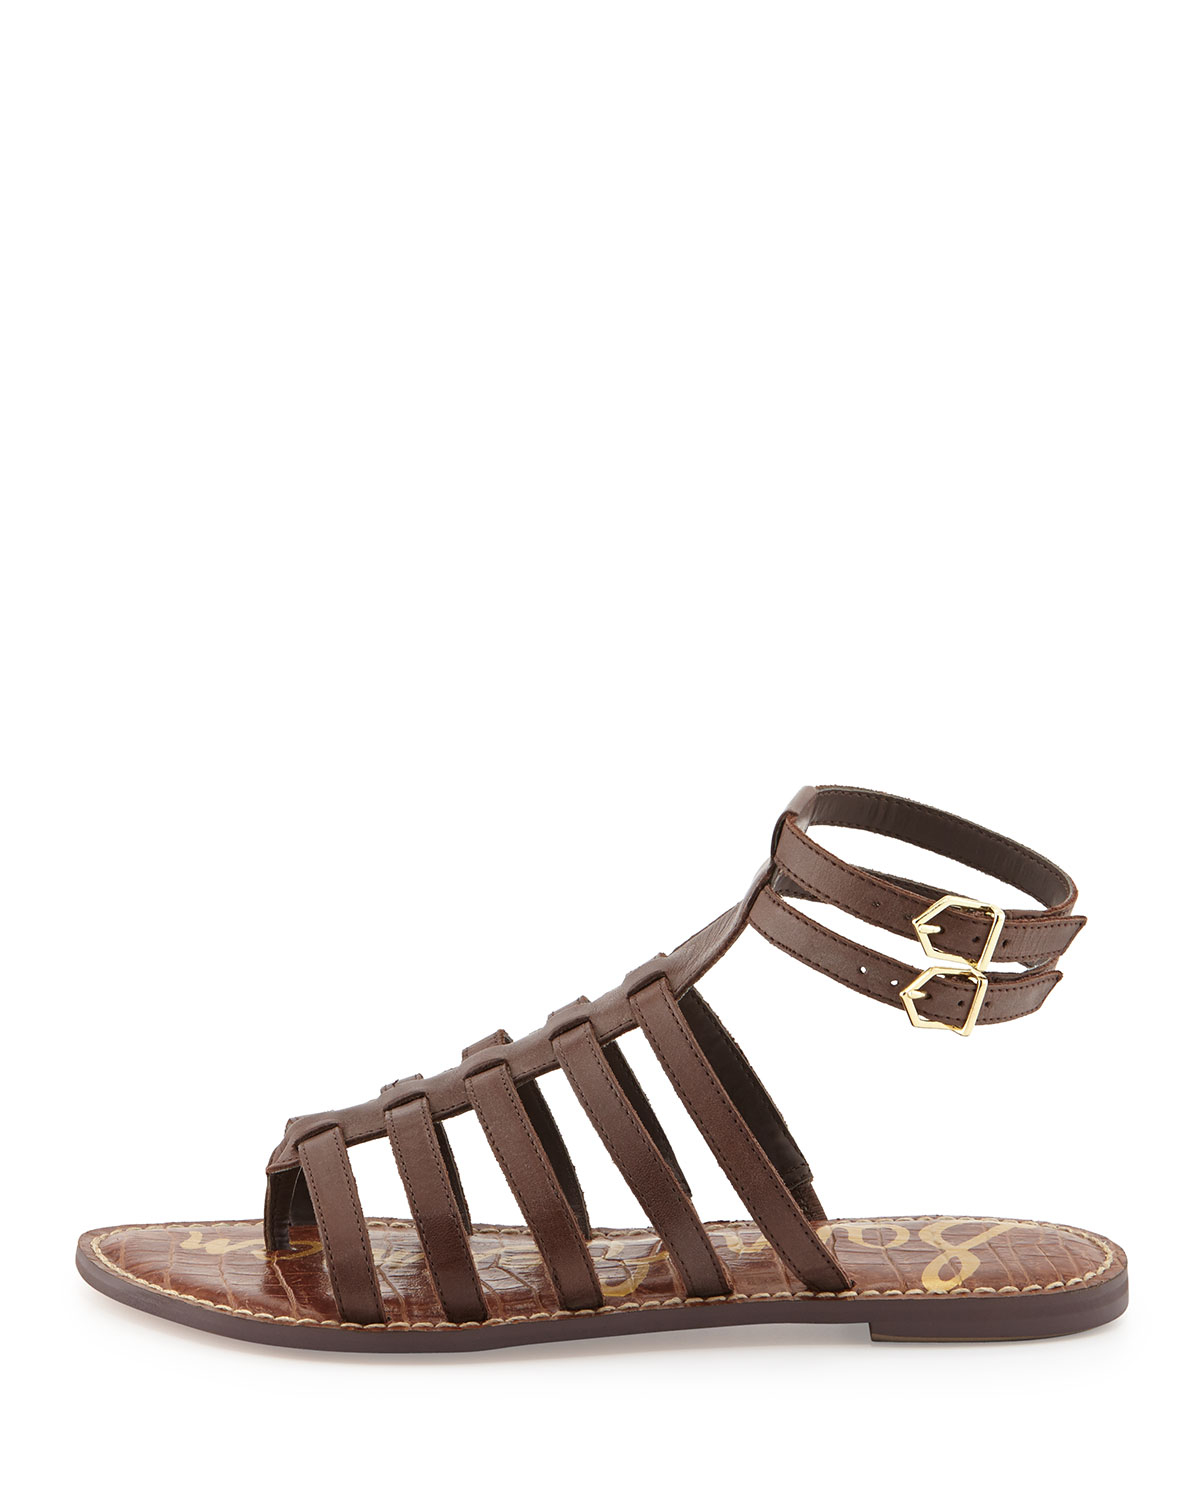 6cc7d4509e2f Lyst - Sam Edelman Gilda Flat Leather Gladiator Sandal Dark ...